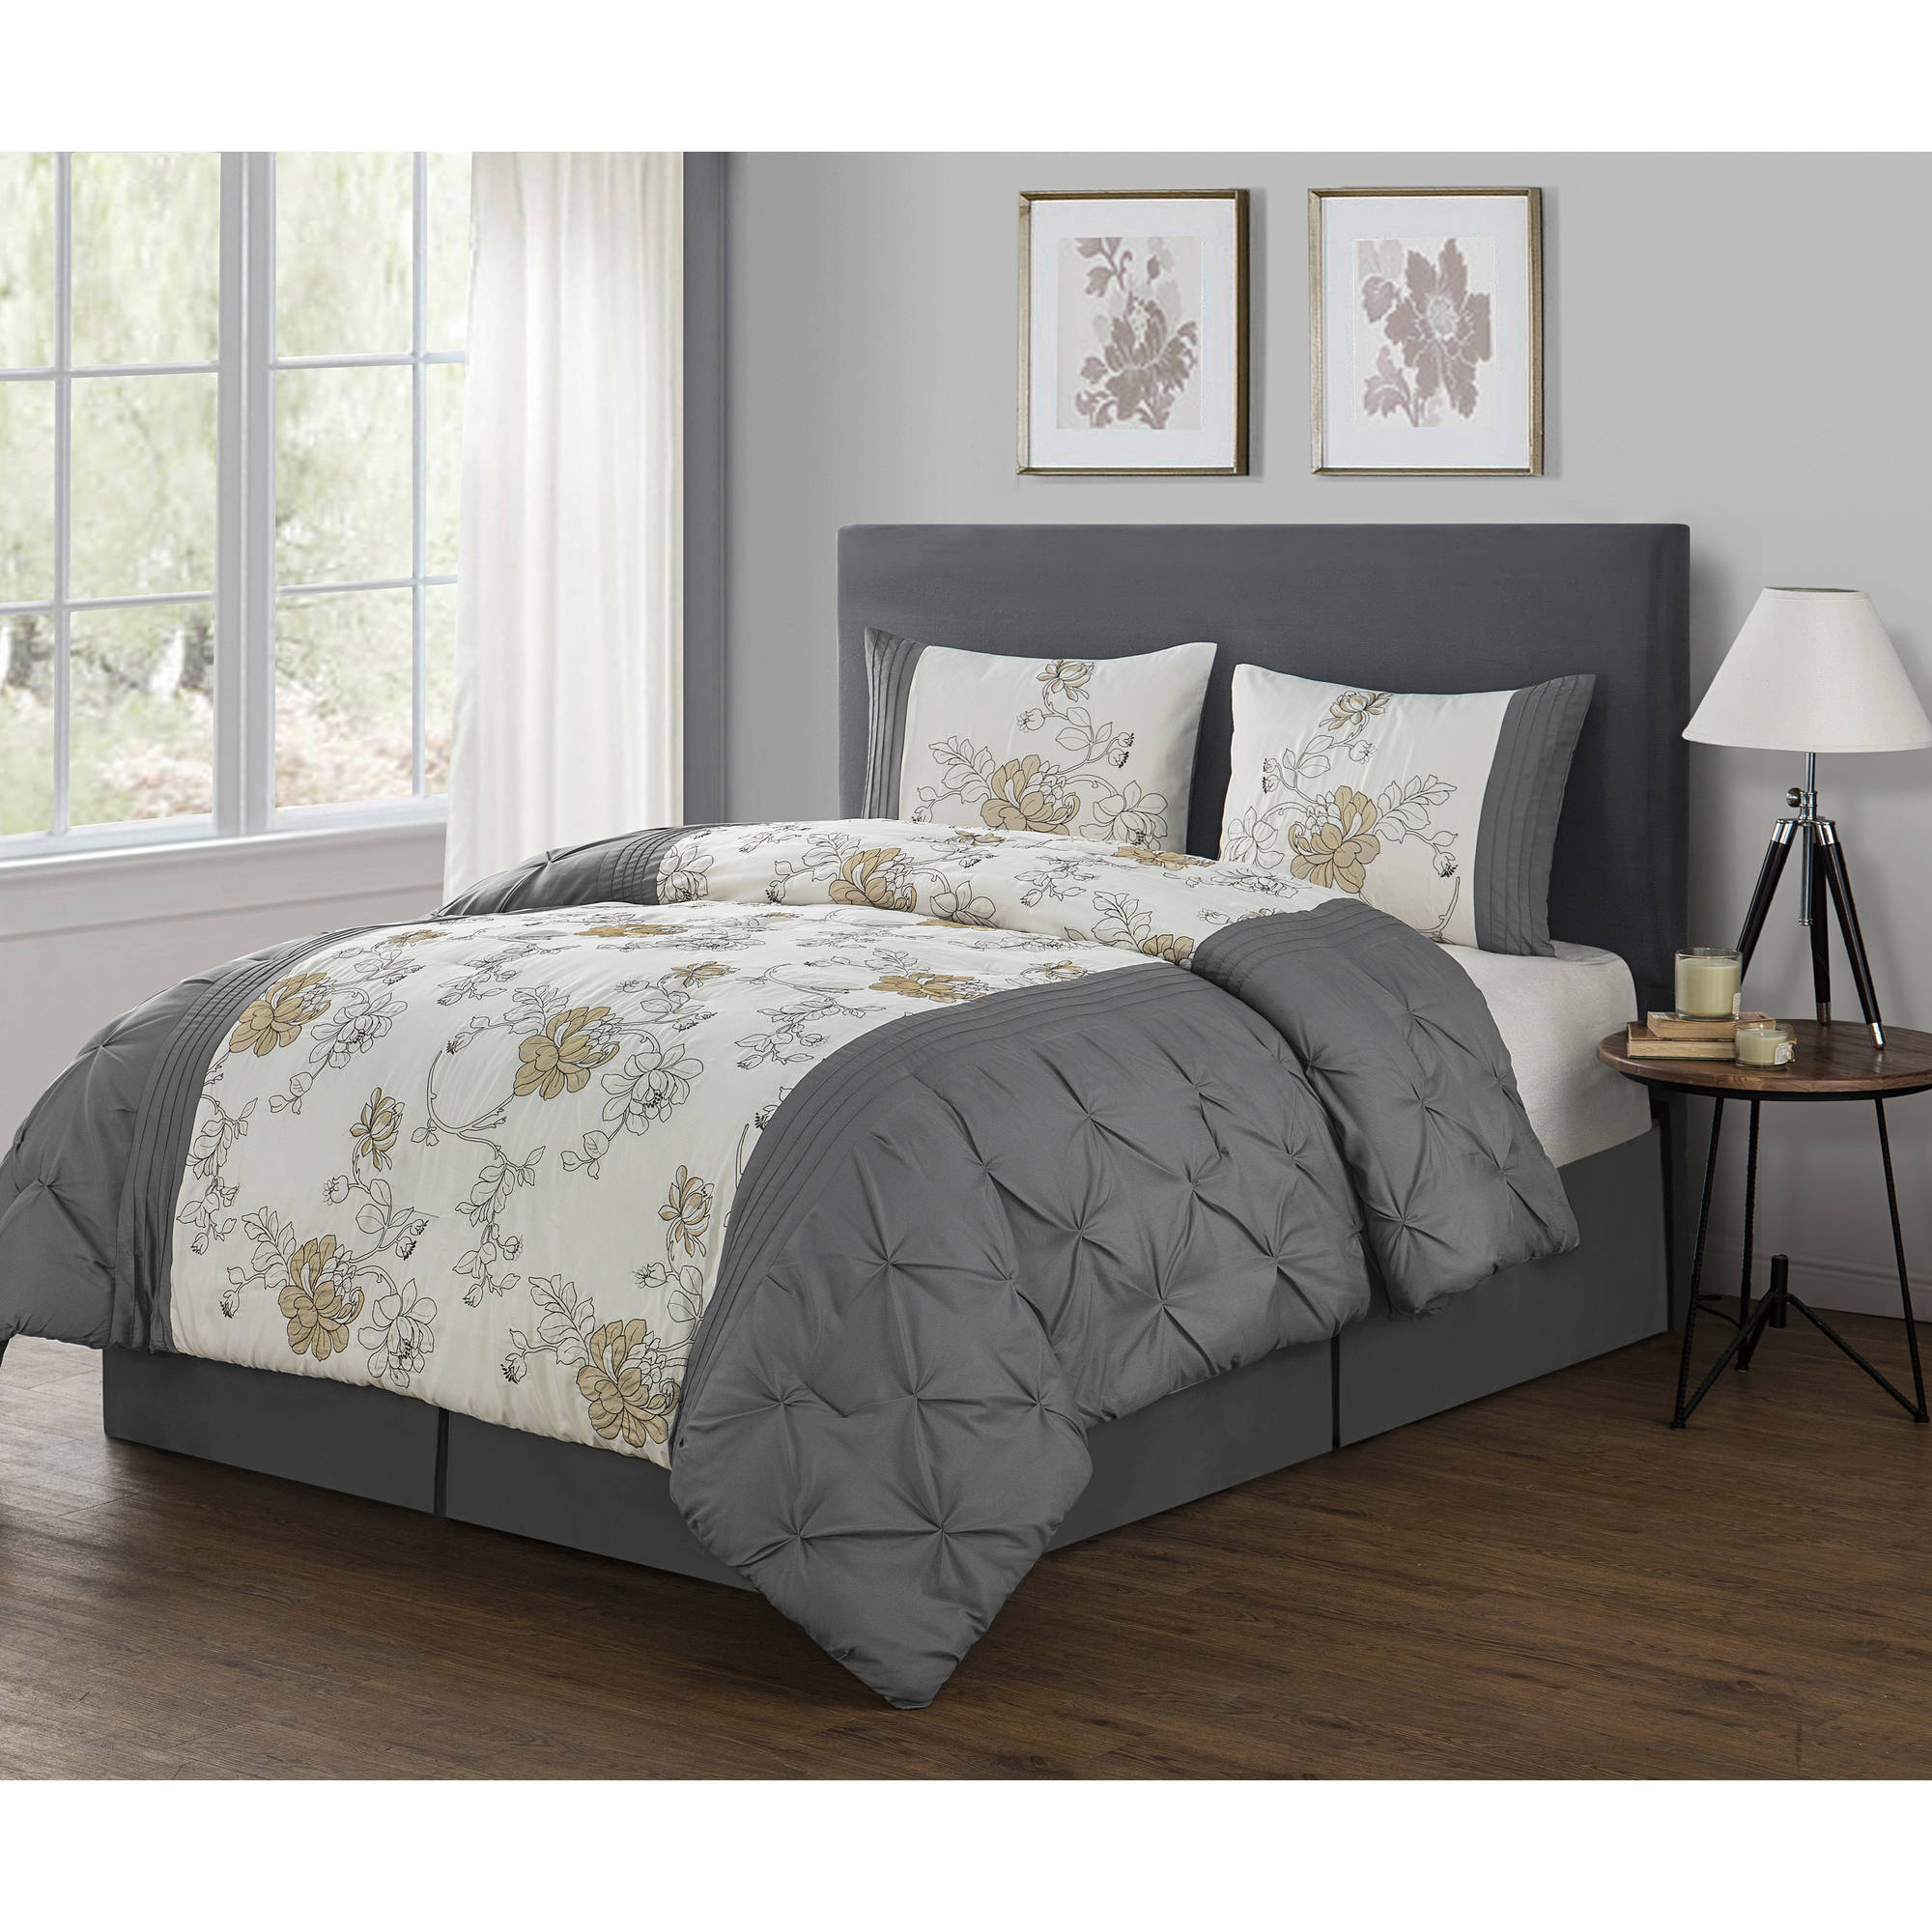 VCNY Home Multi-Color Floral Textured 4-Piece Alexis Bedding Comforter Set, Shams and Bedskirt Included